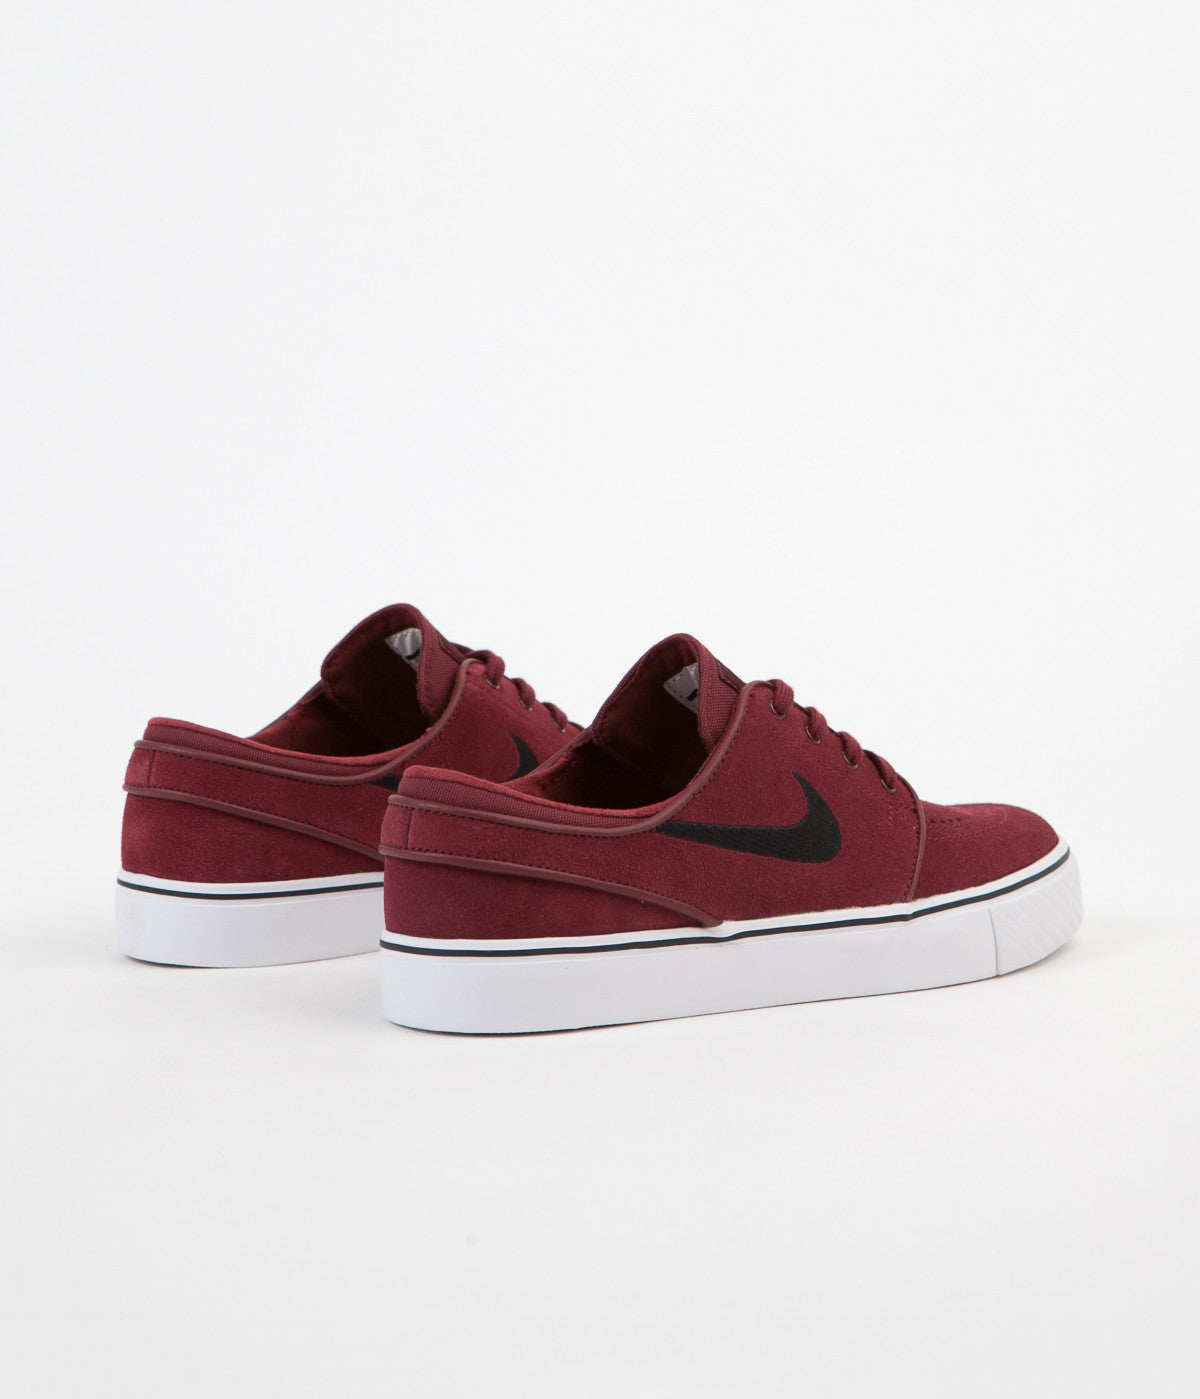 entrada Cuervo hélice  Nike SB Stefan Janoski Shoes - Dark Team Red / Black | Flatspot